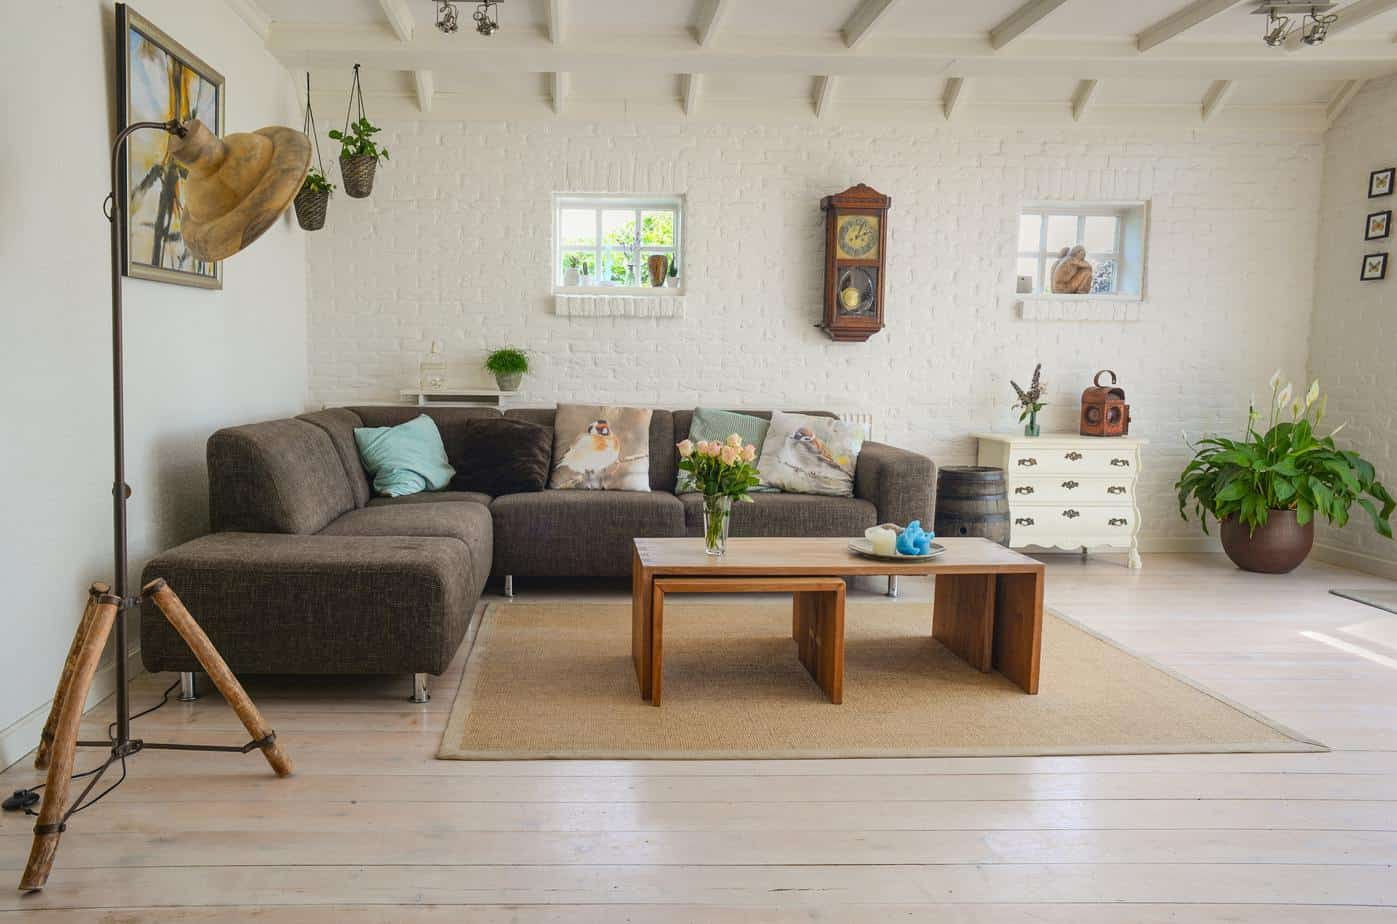 12 Ridiculously Easy Ideas To Get Better Use Out Of Your Unfinished Basement Treasured Spaces